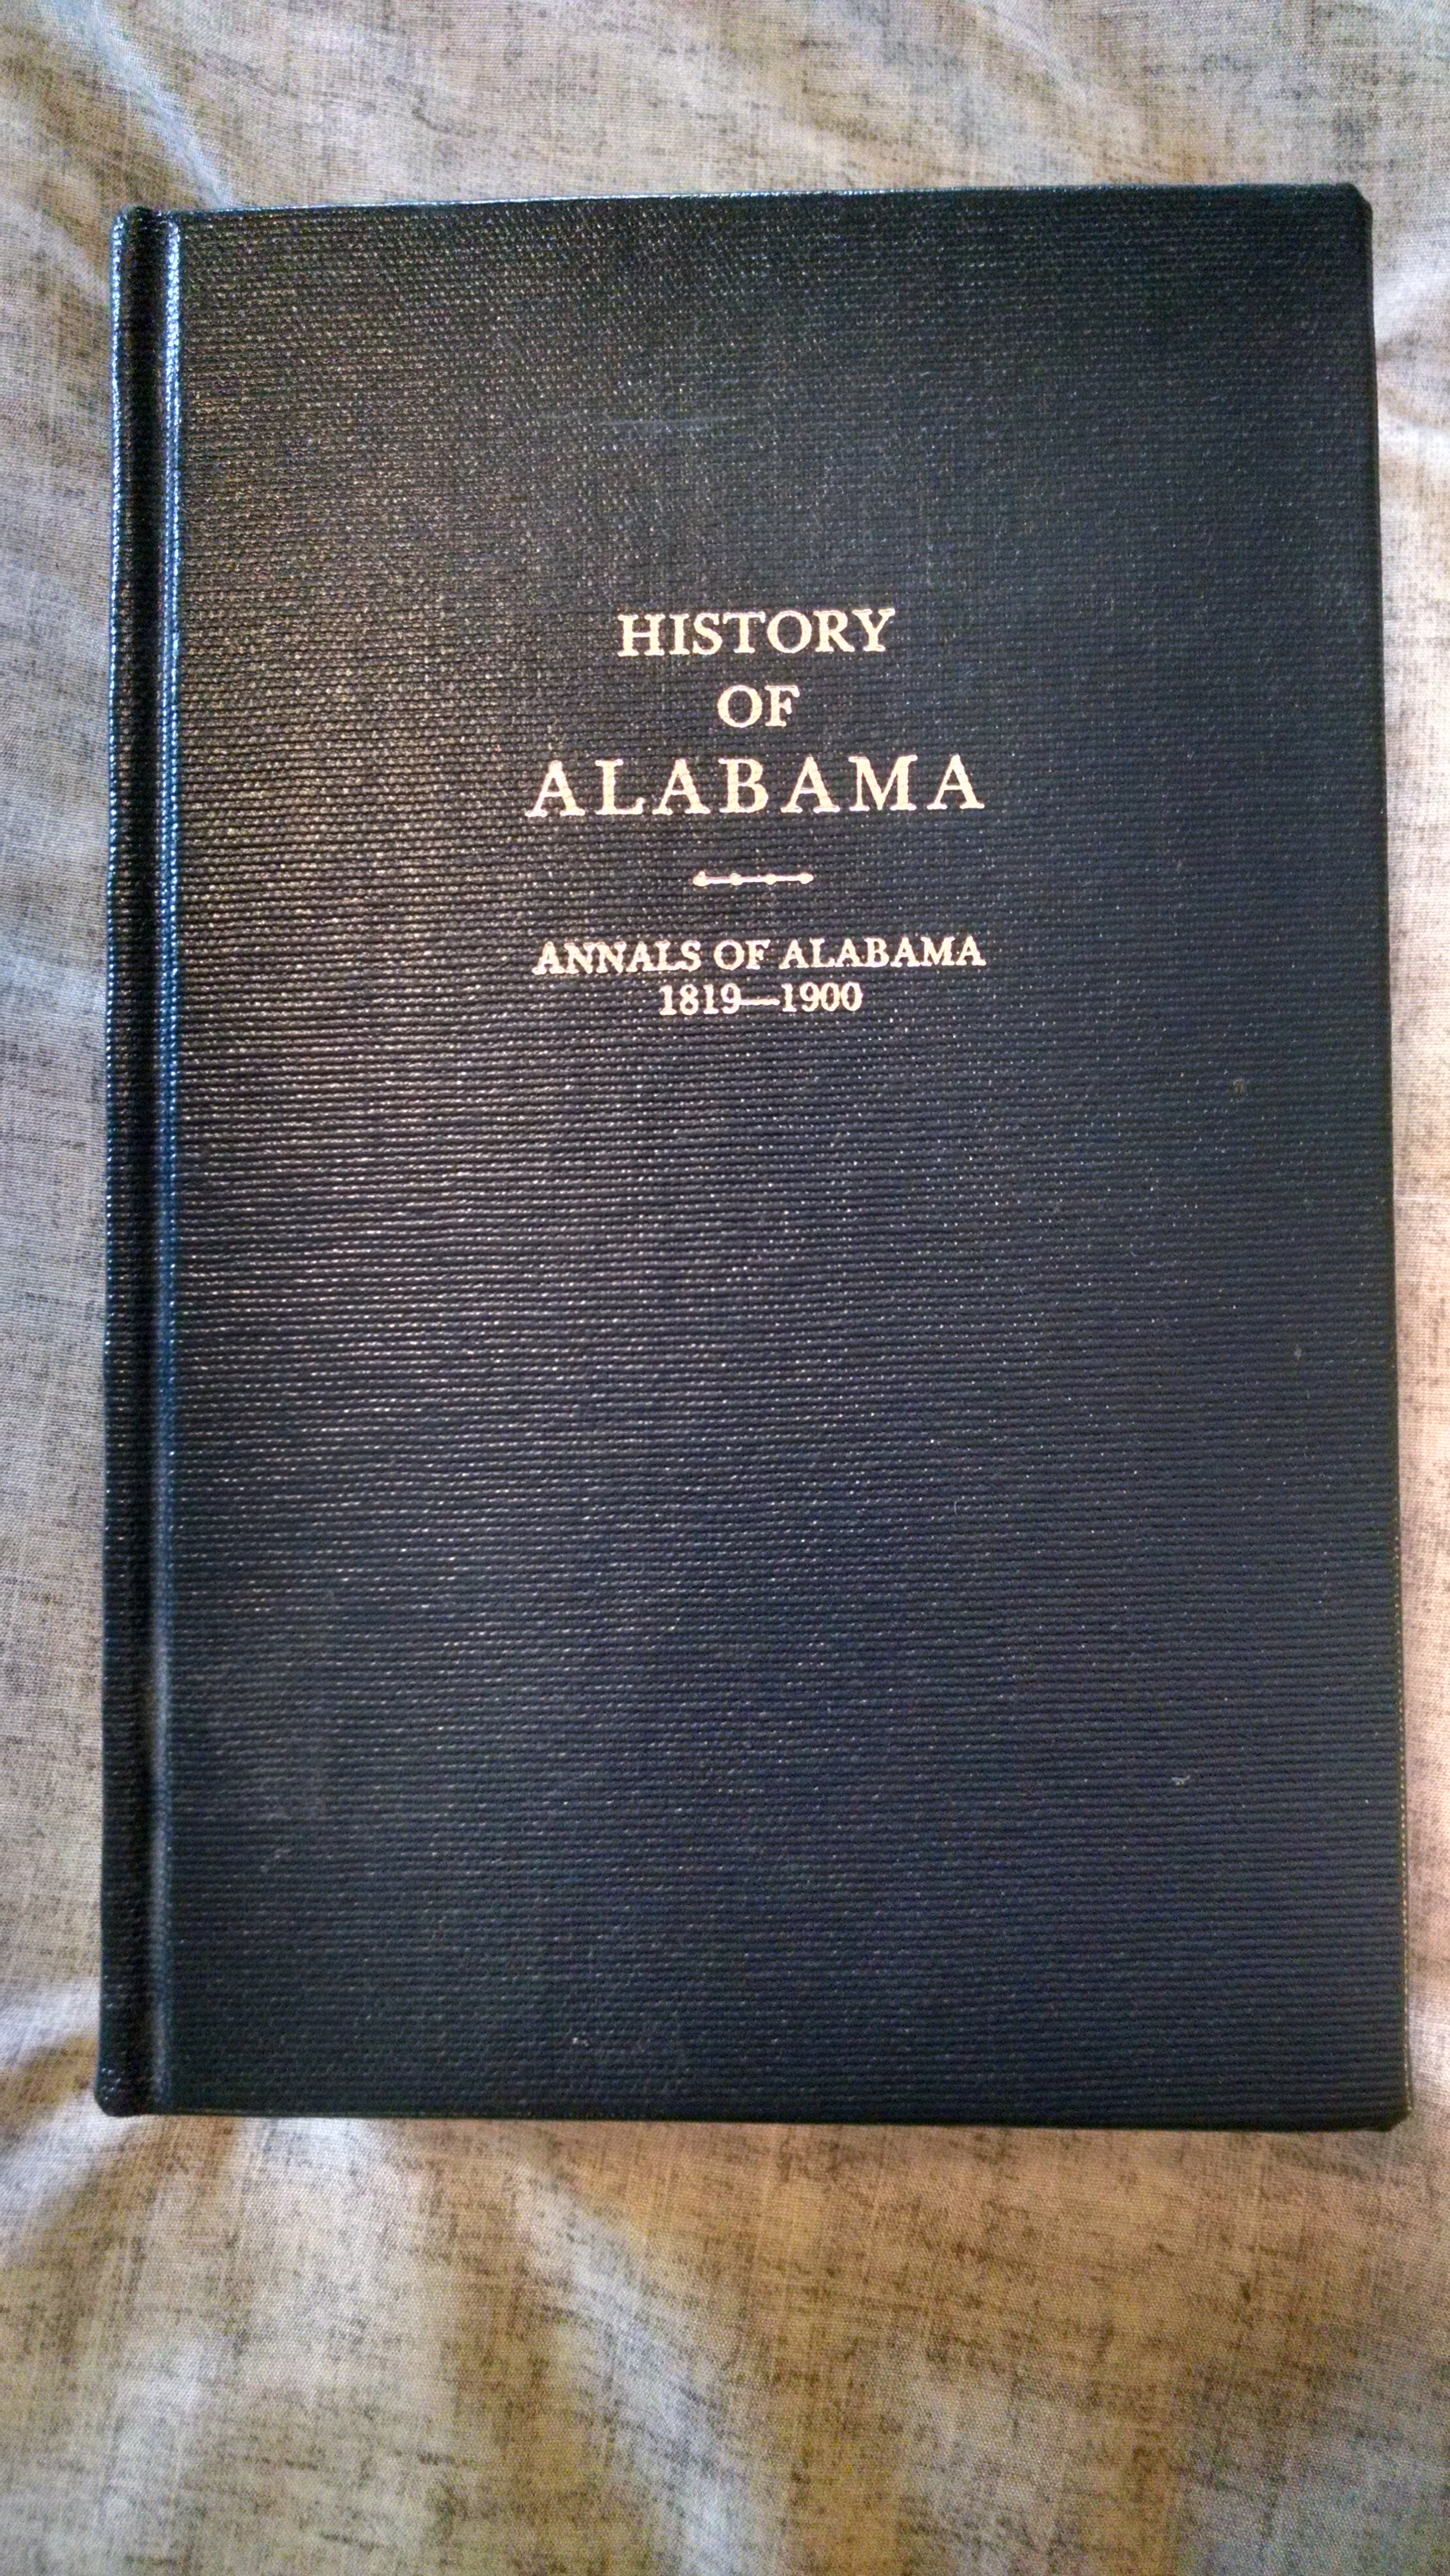 Image for HISTORY OF ALABAMA BY ALBERT PICKETT  AND ANNALS OF ALABAMA BY THOMAS OWEN